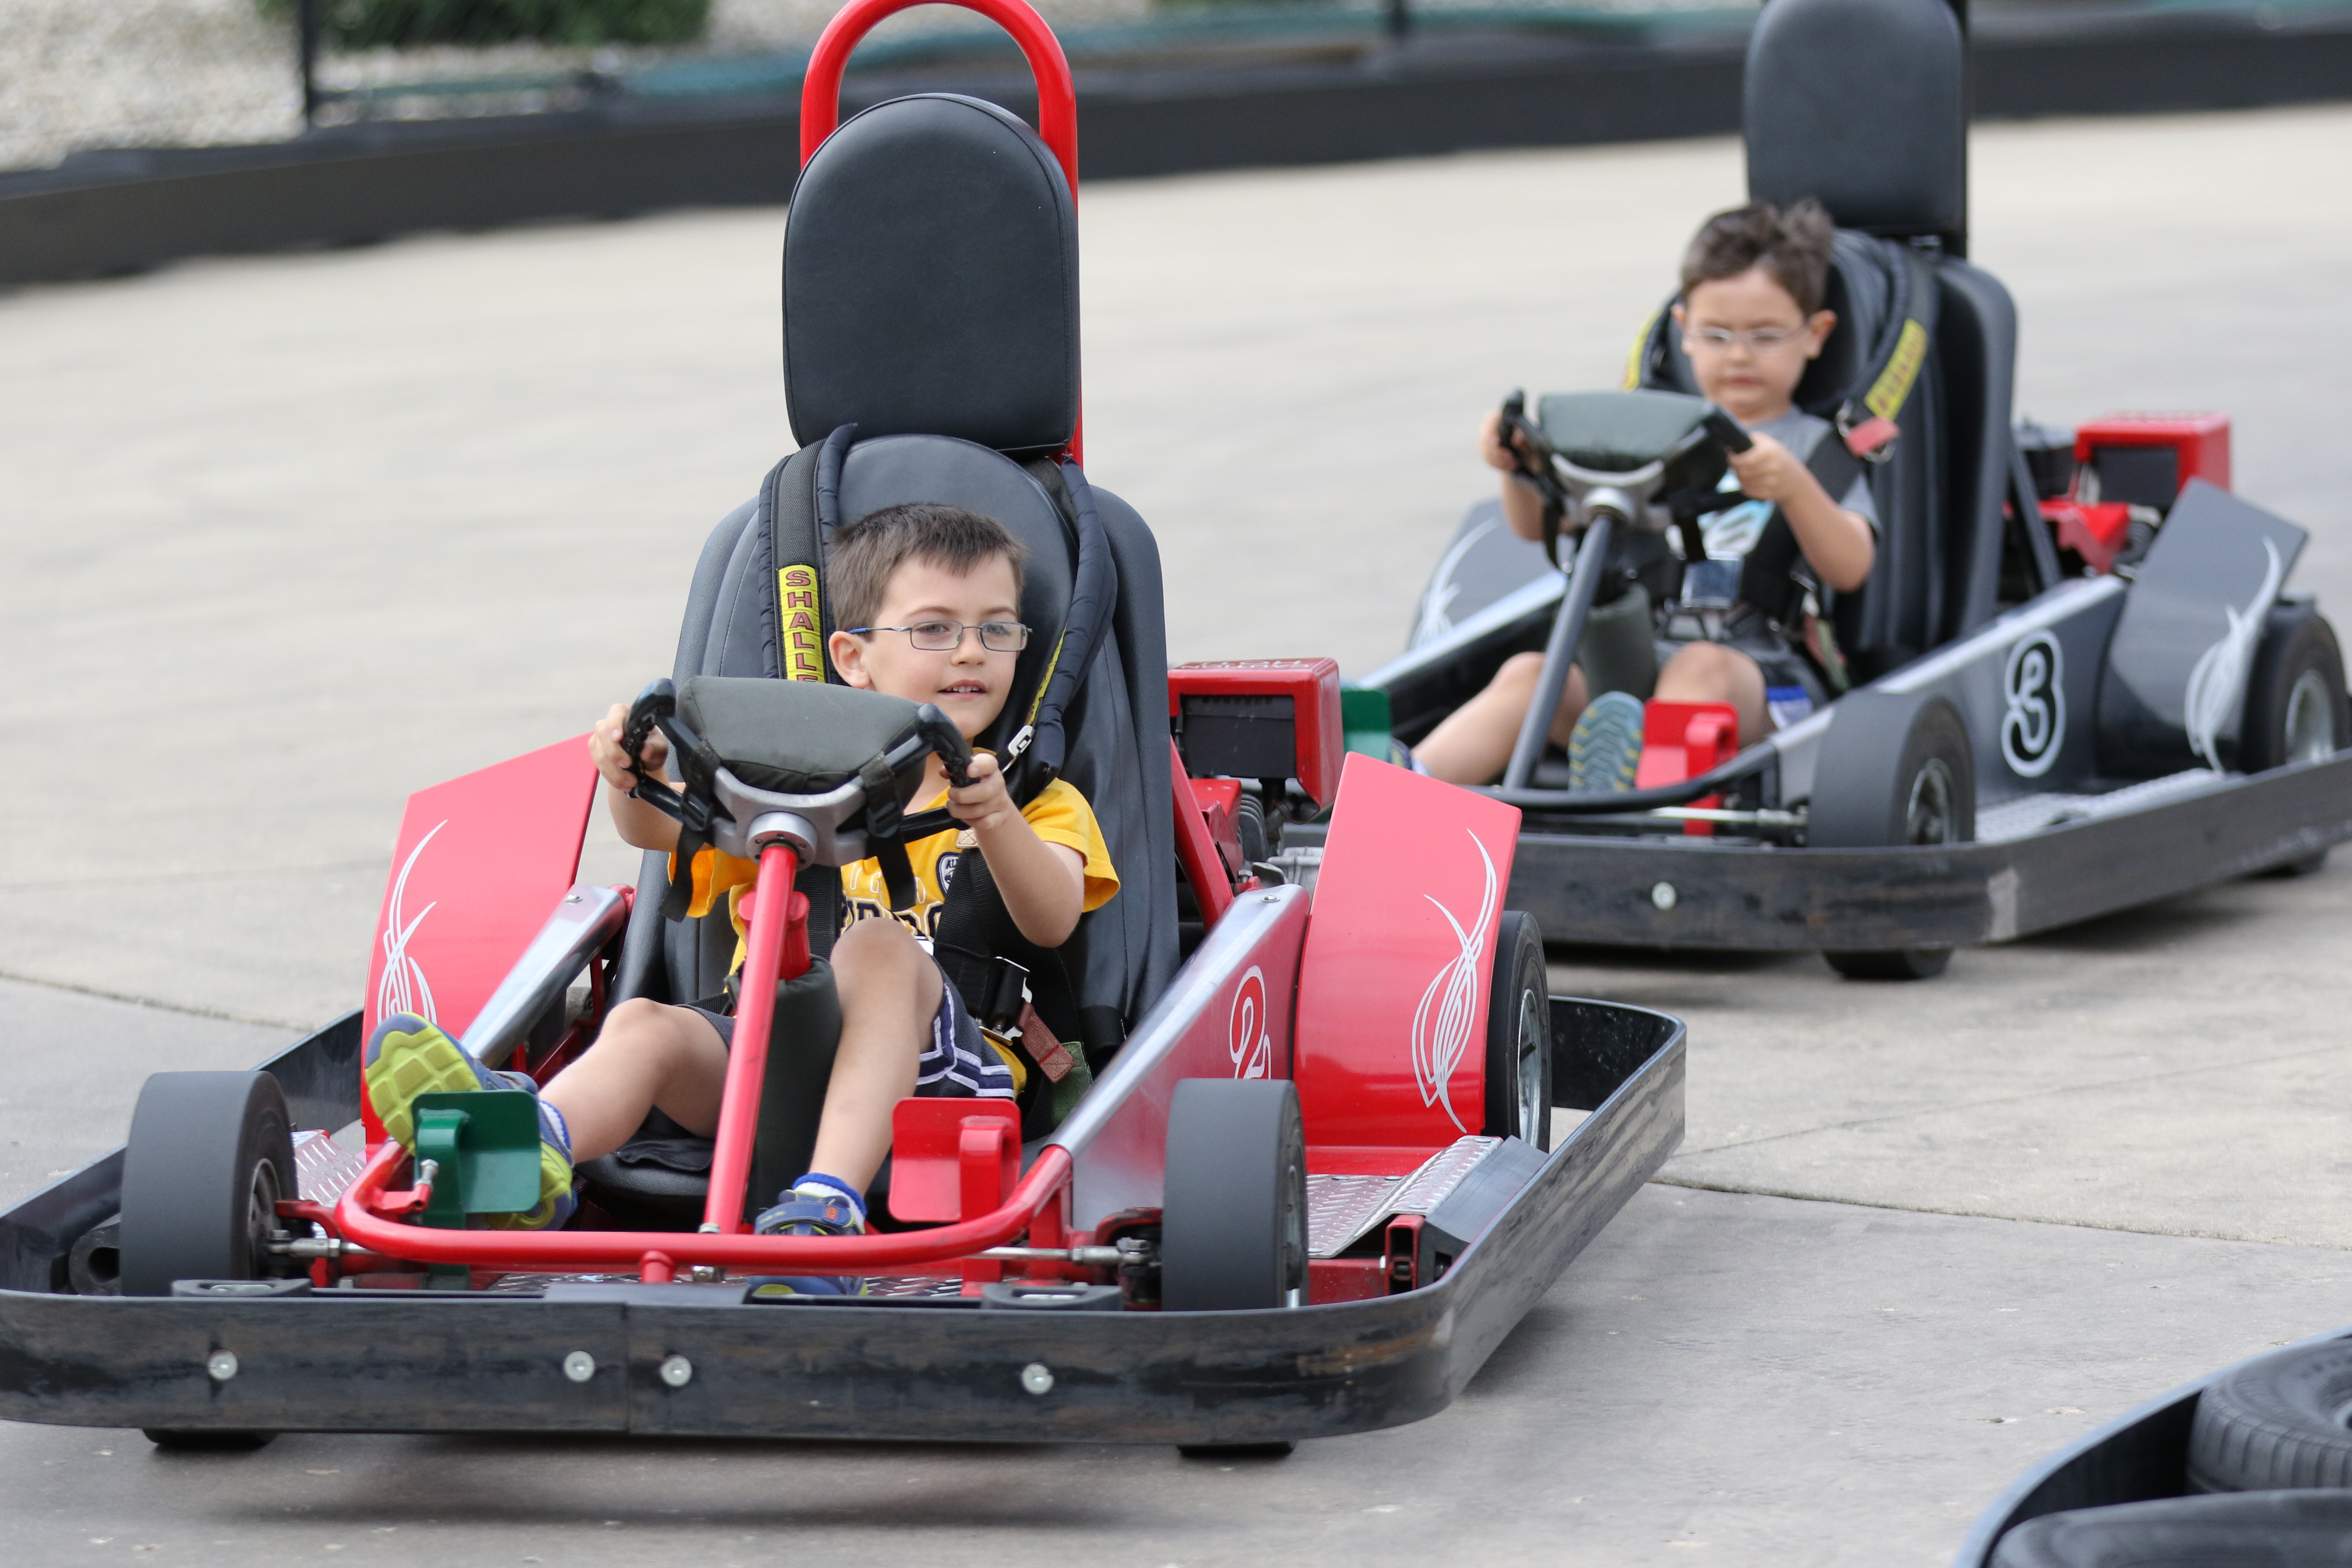 Outdoor Go-Kart Track, Slick Track, Racing & Go Kart Parties